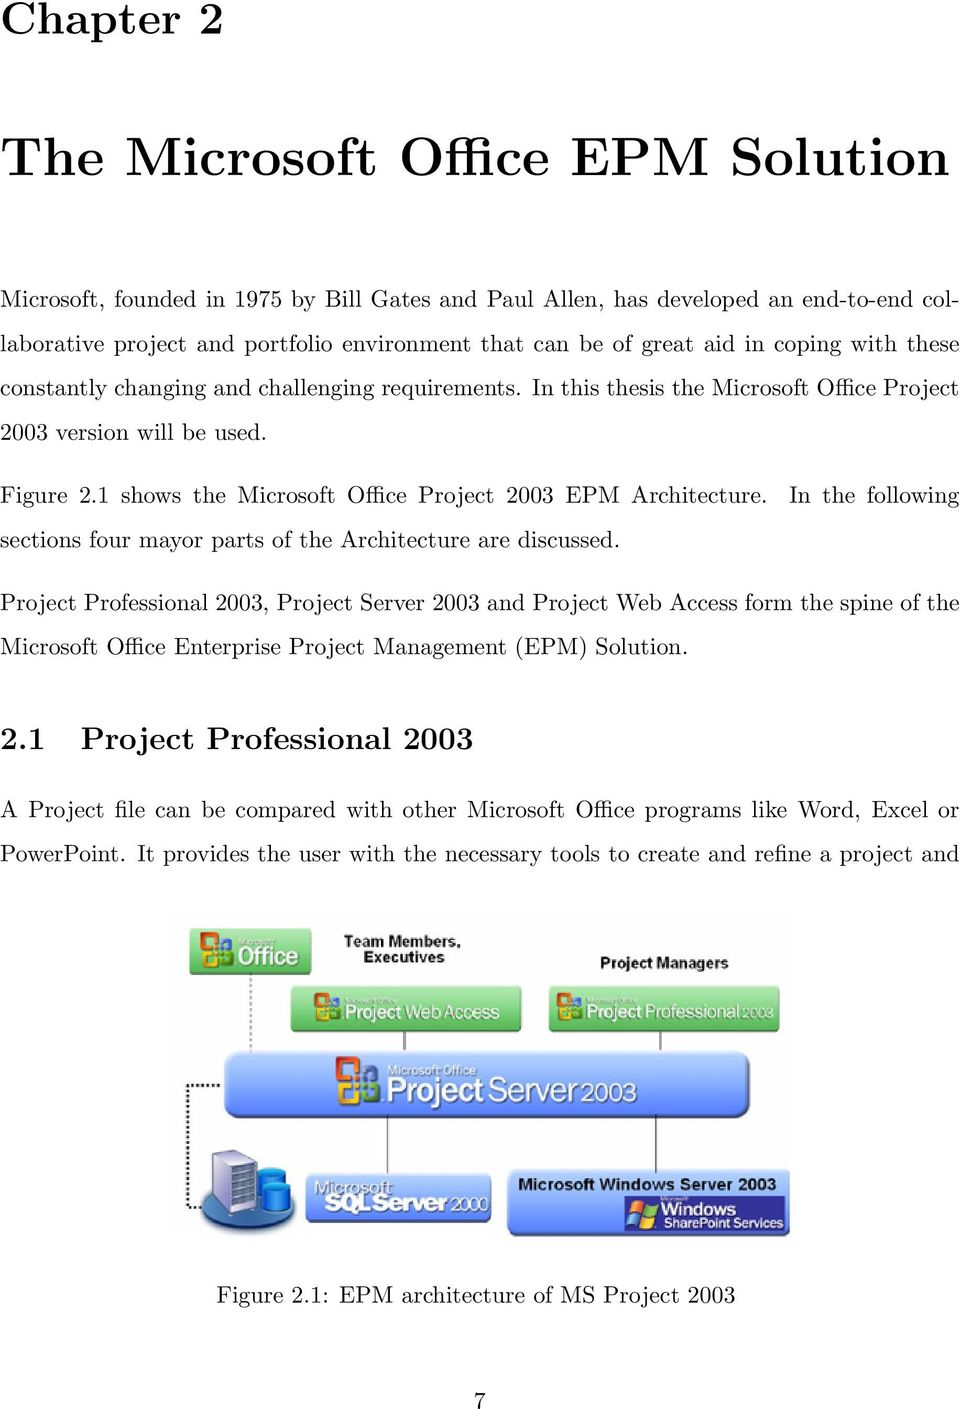 1 shows the Microsoft Office Project 2003 EPM Architecture. sections four mayor parts of the Architecture are discussed.